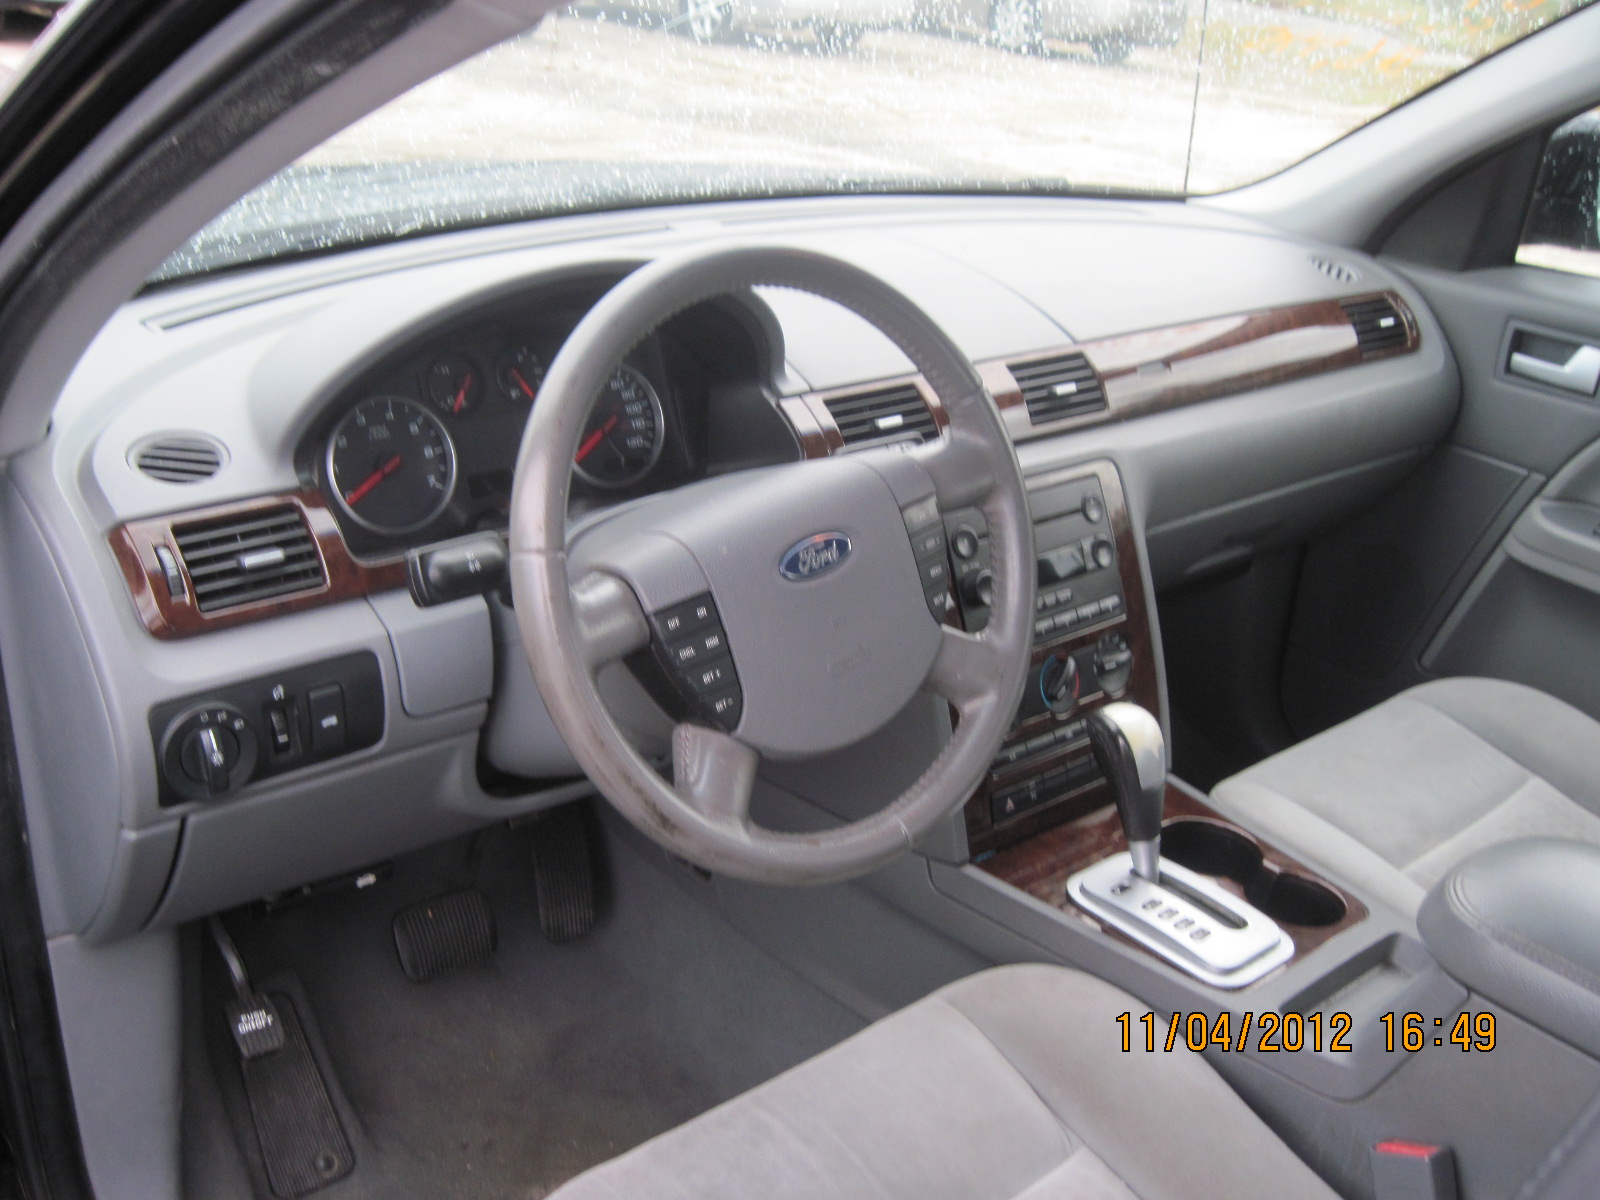 Ford Five Hundred Sel Pic on 2007 Ford Five Hundred Sel Awd Specs